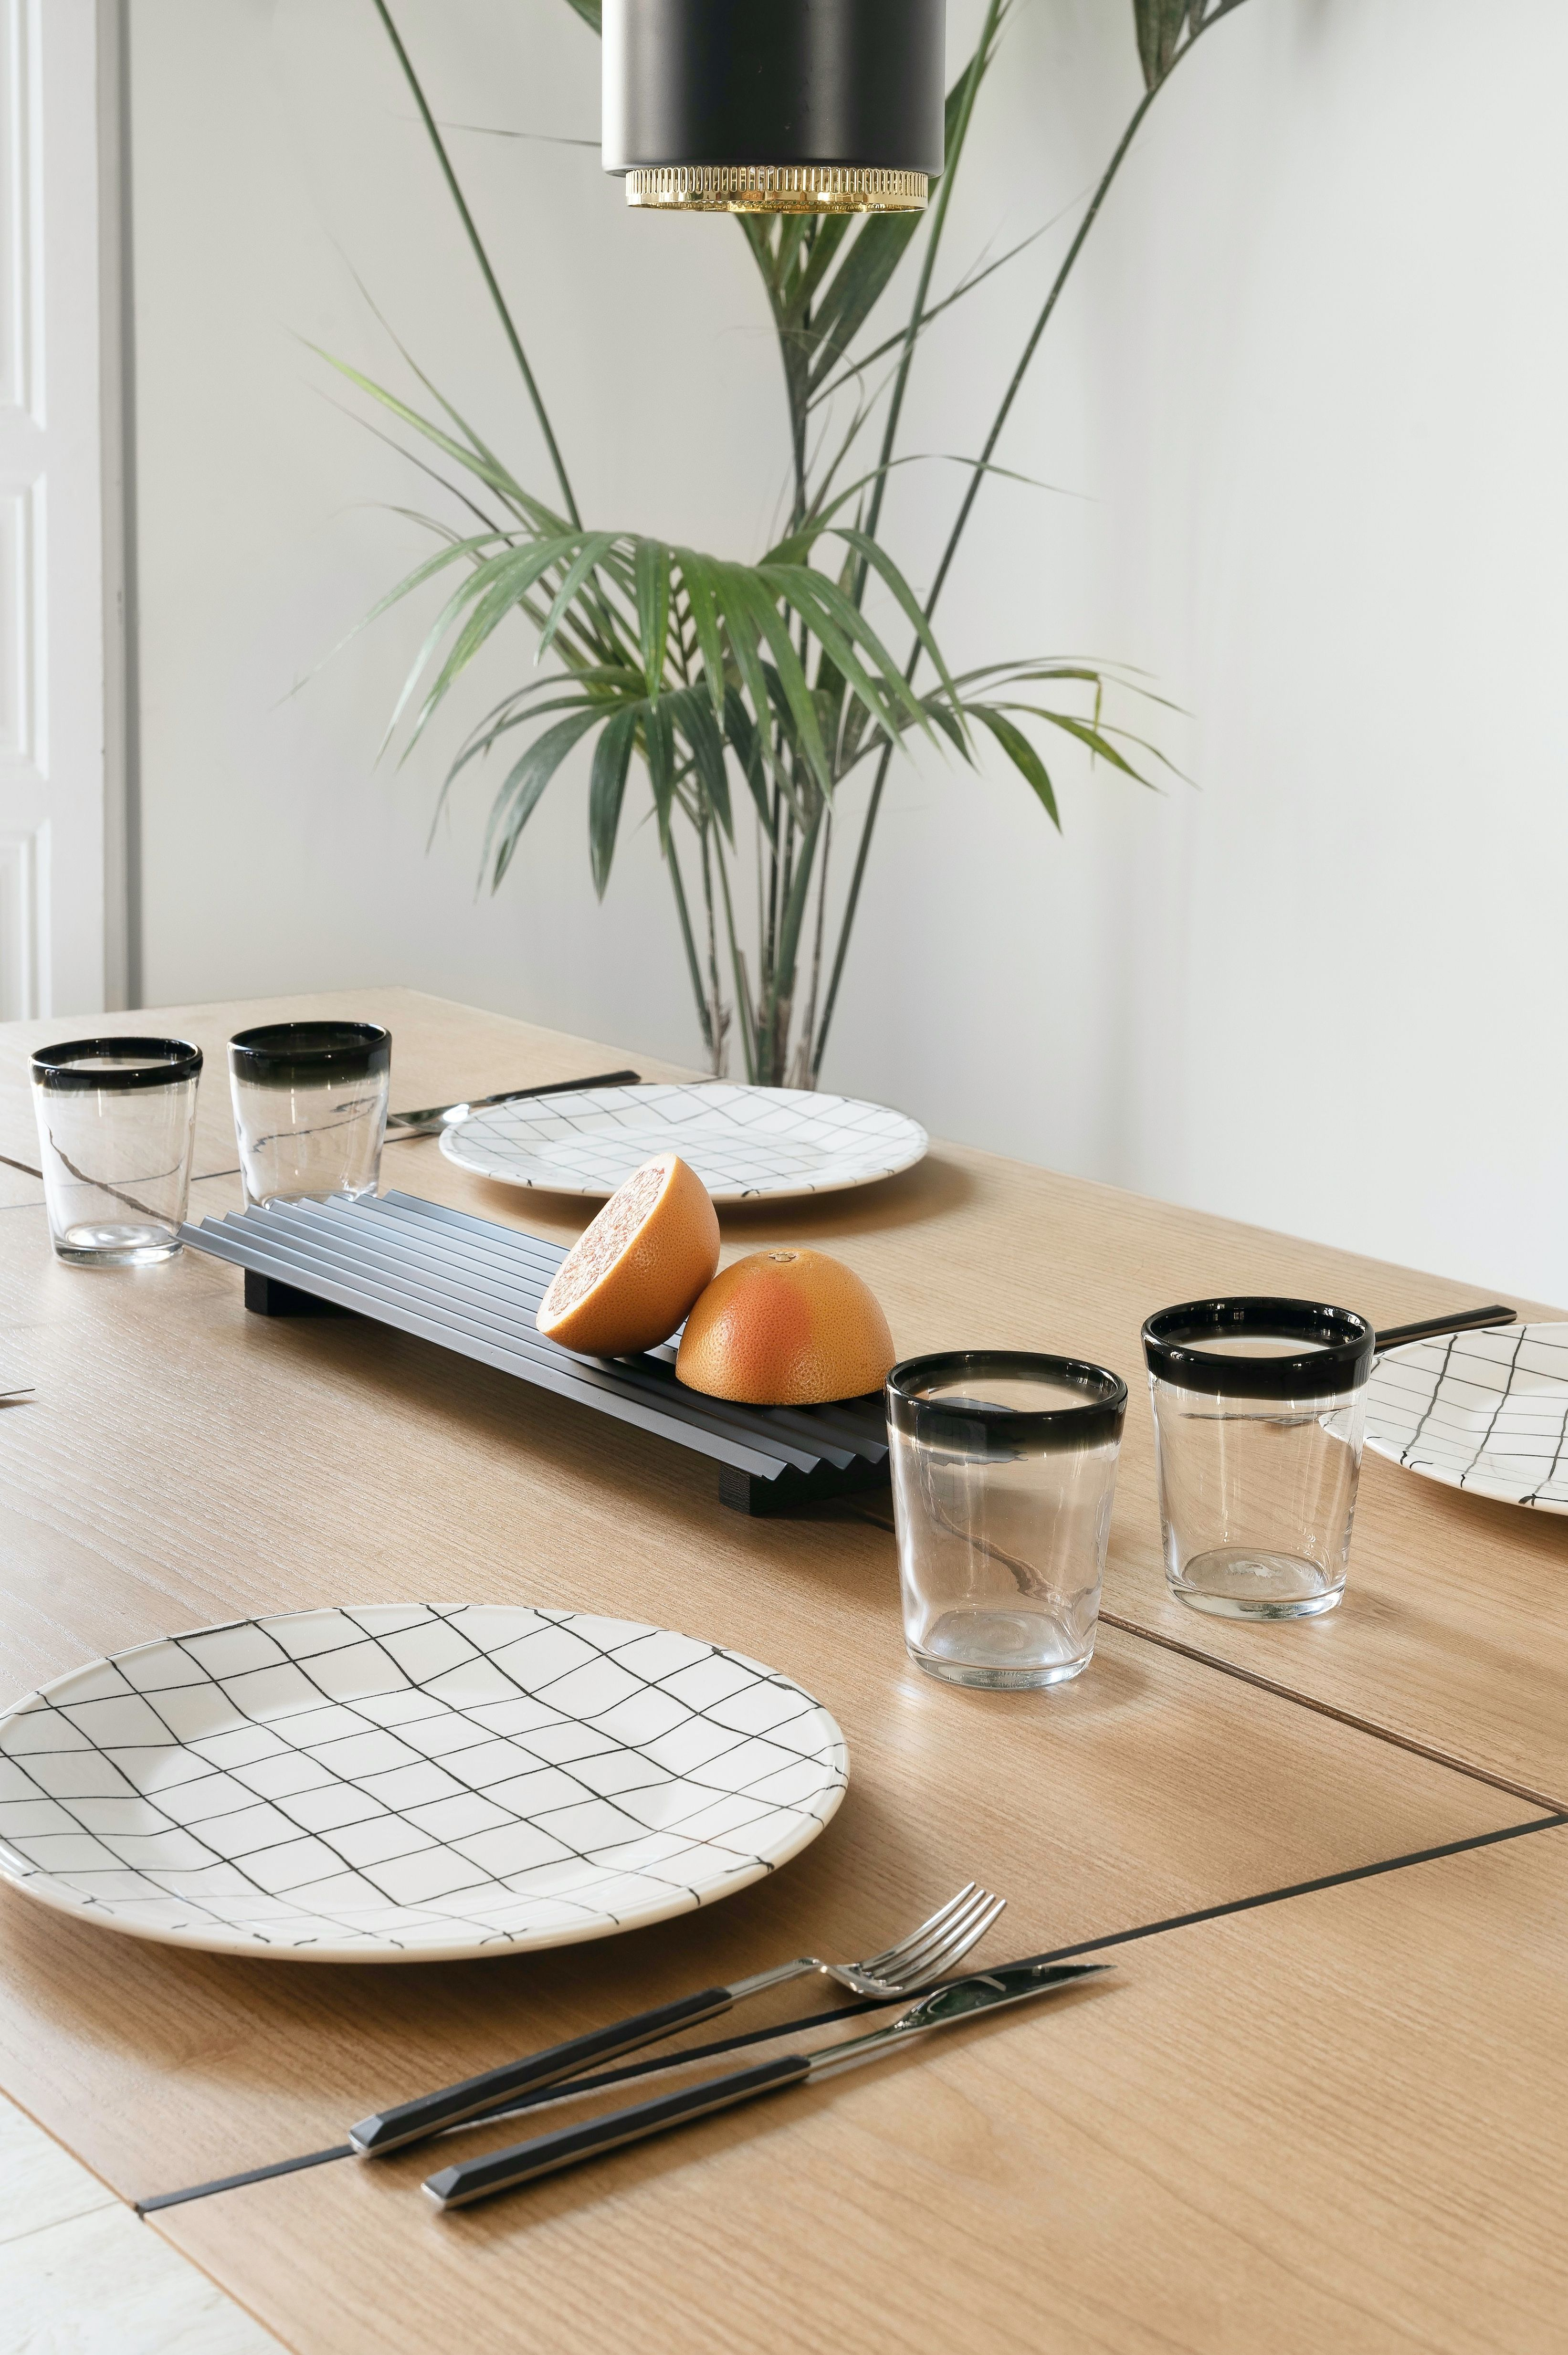 Your decor is what gives personality to your dinning table. This selection of modern and minimal items is just on point. #tabledecor #minimaldecor #dinningtable #woodenfurniture